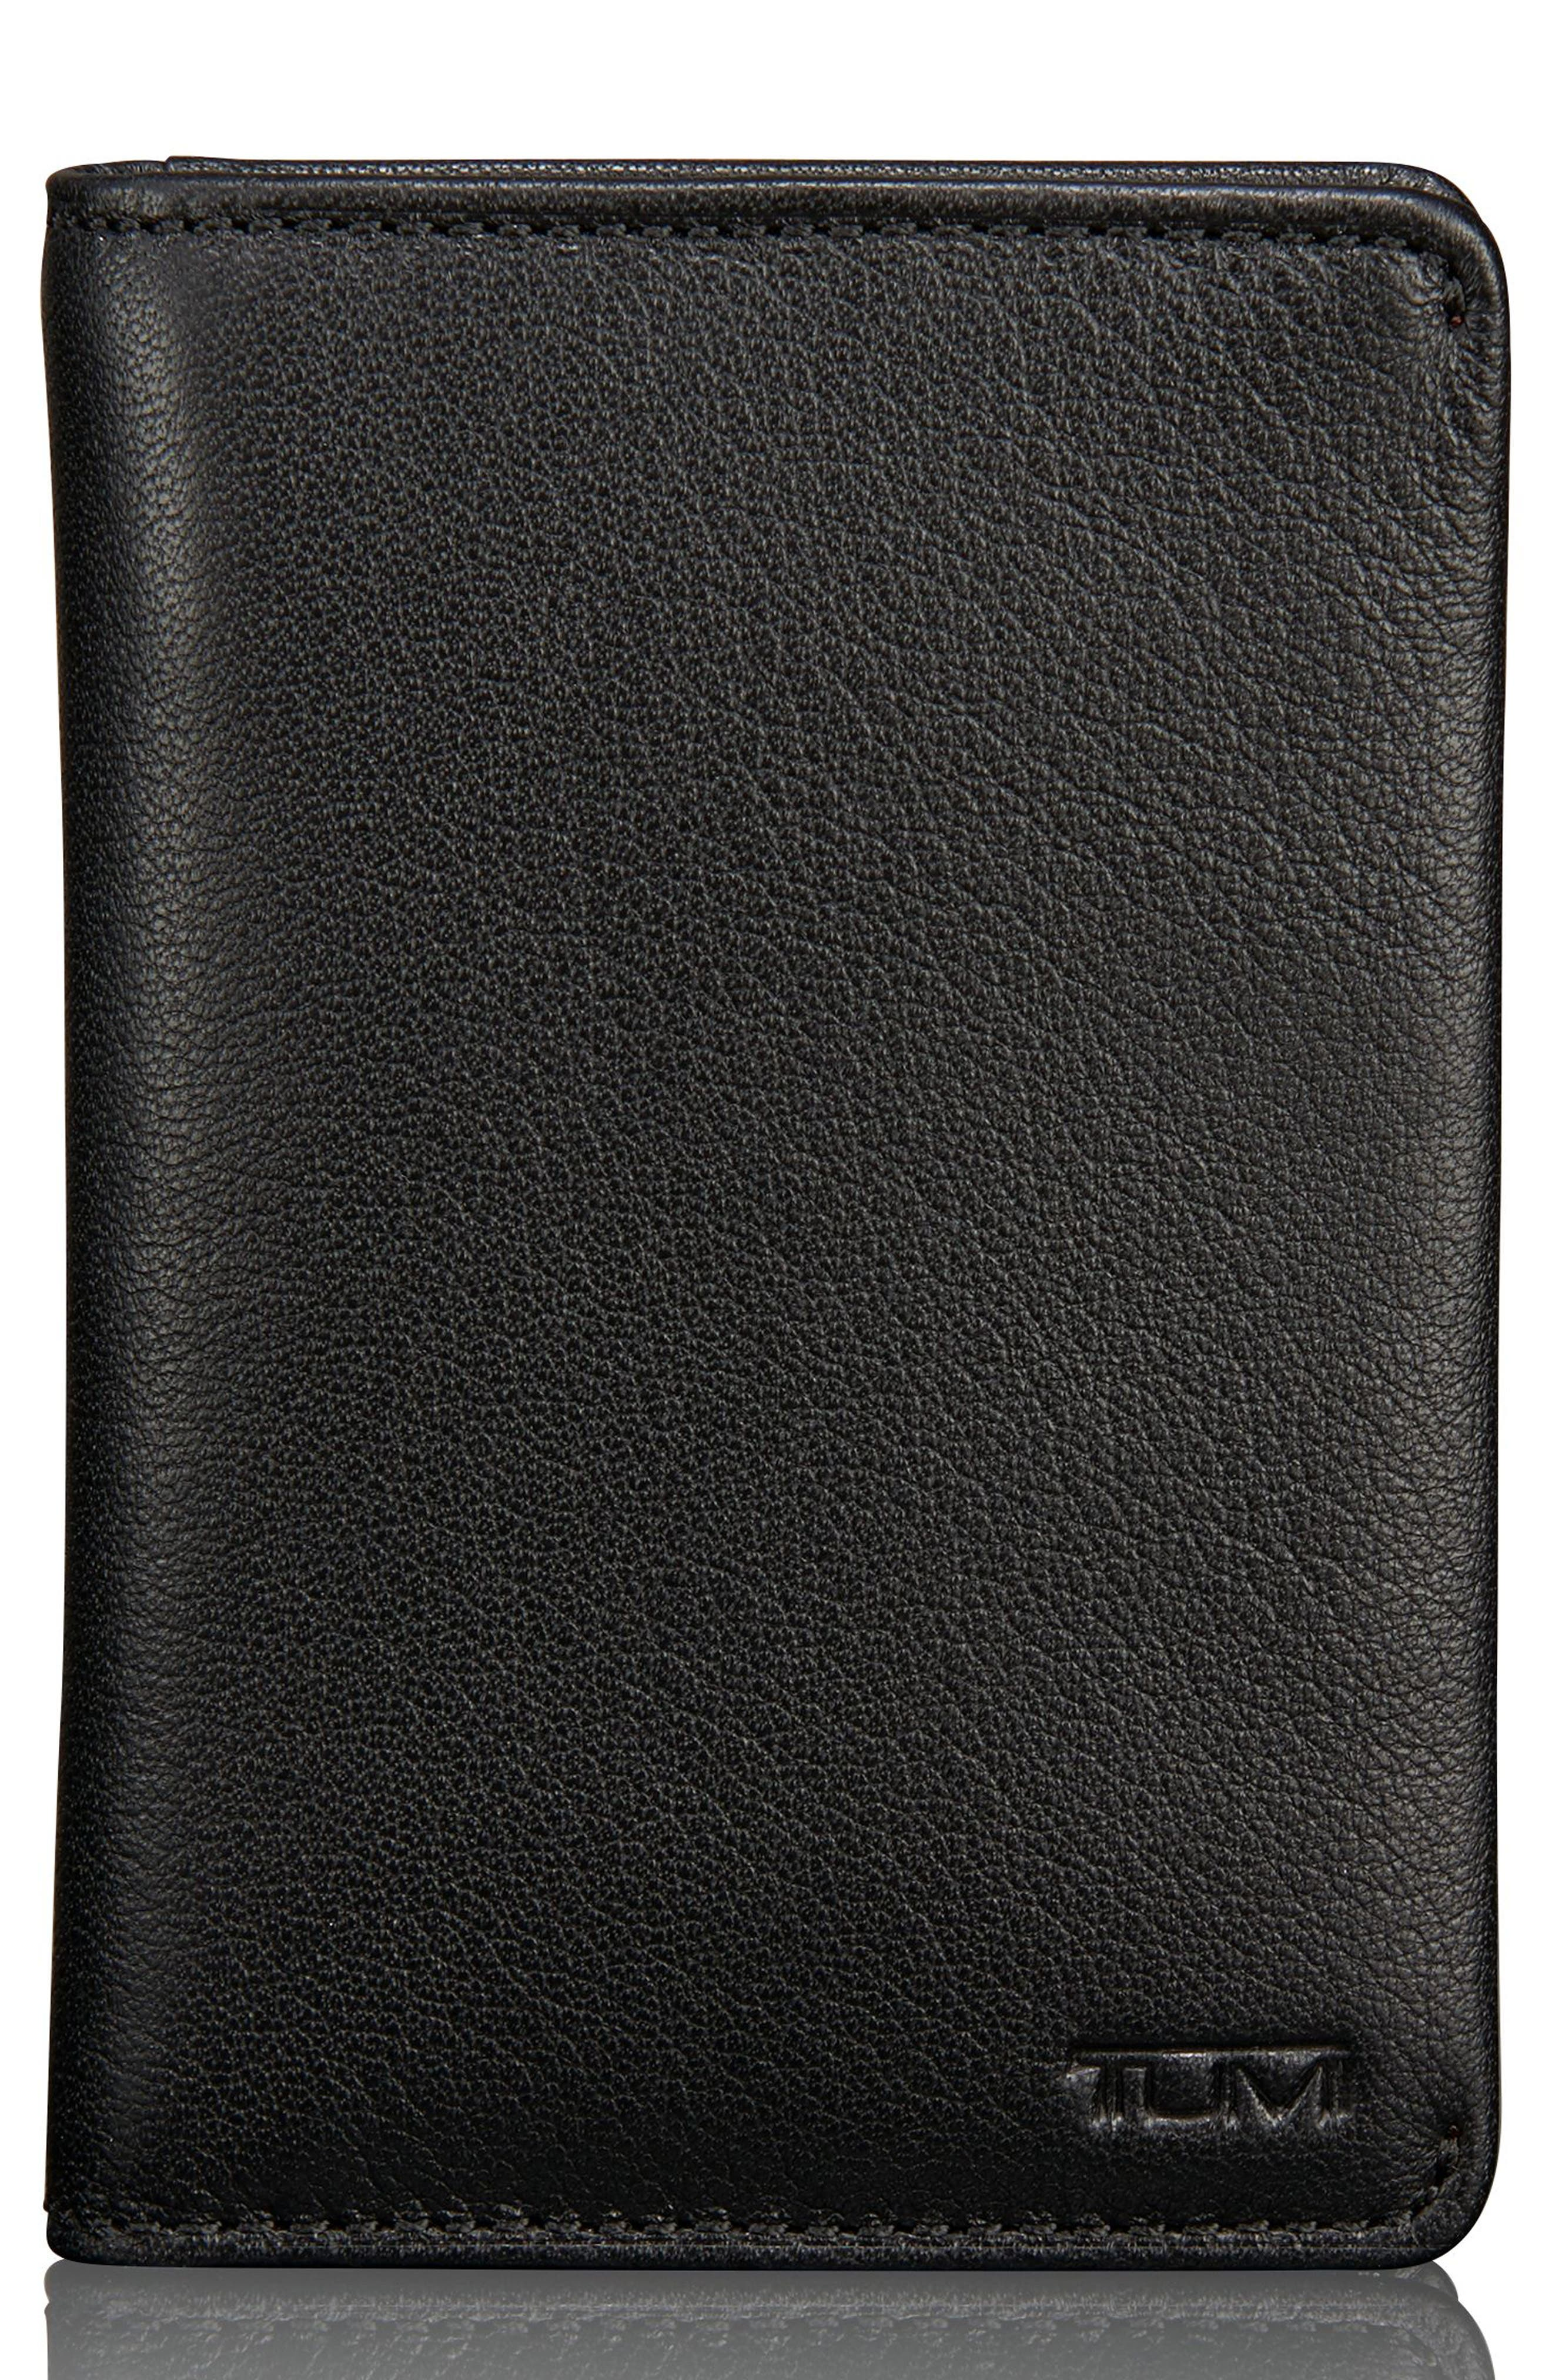 TUMI,                             Leather Card Case,                             Main thumbnail 1, color,                             011